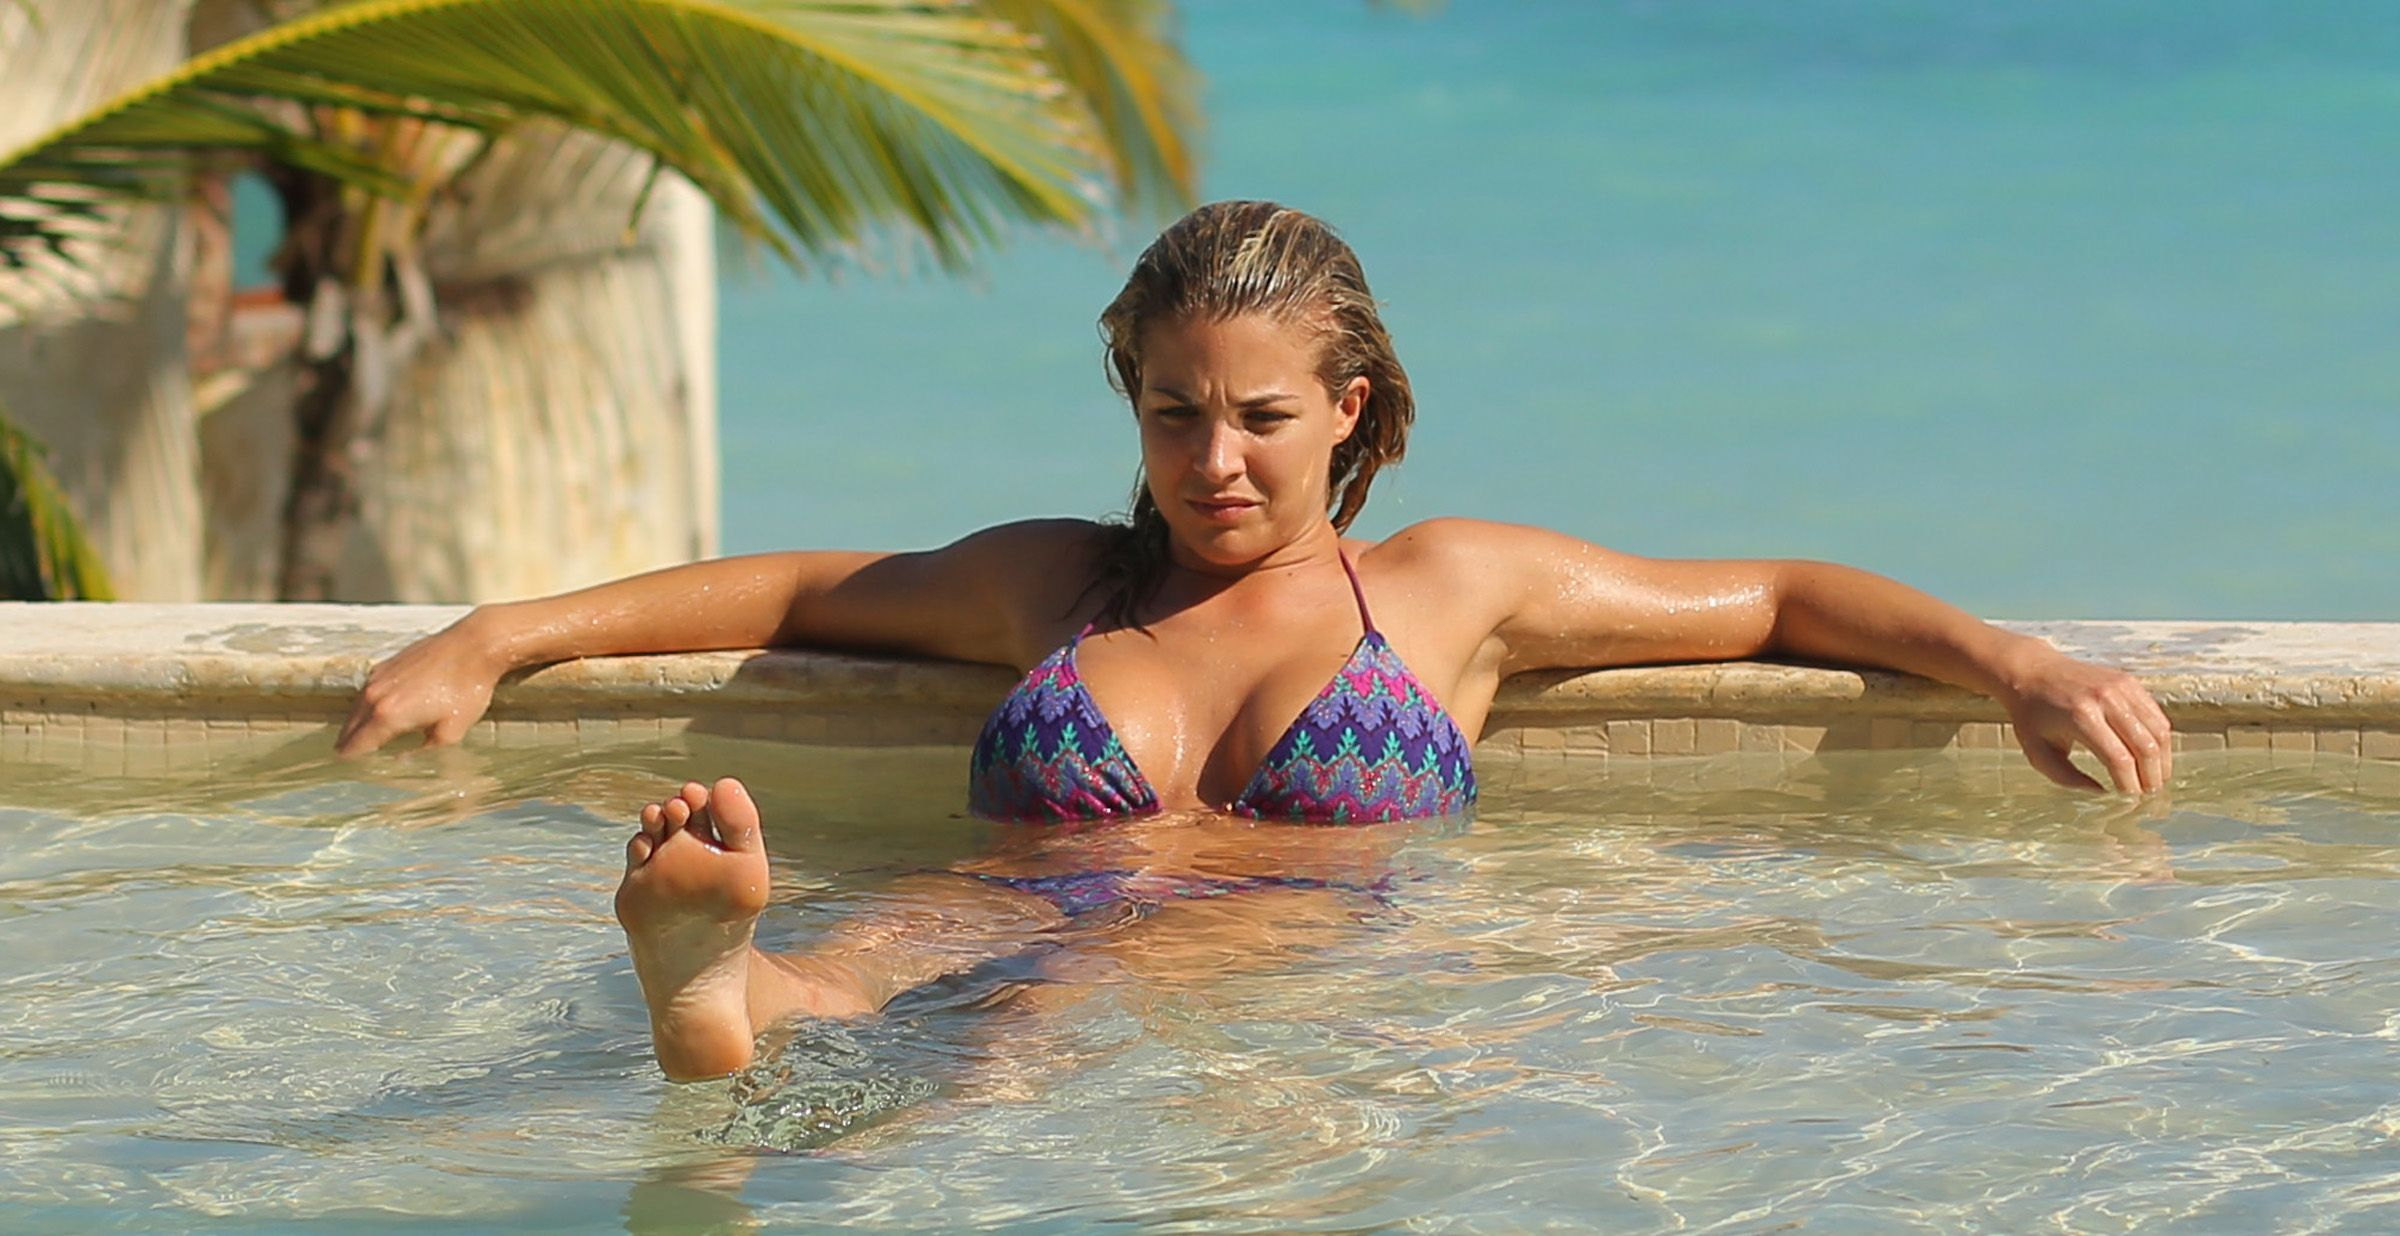 Feet Gemma Atkinson nudes (24 foto and video), Tits, Bikini, Boobs, butt 2019